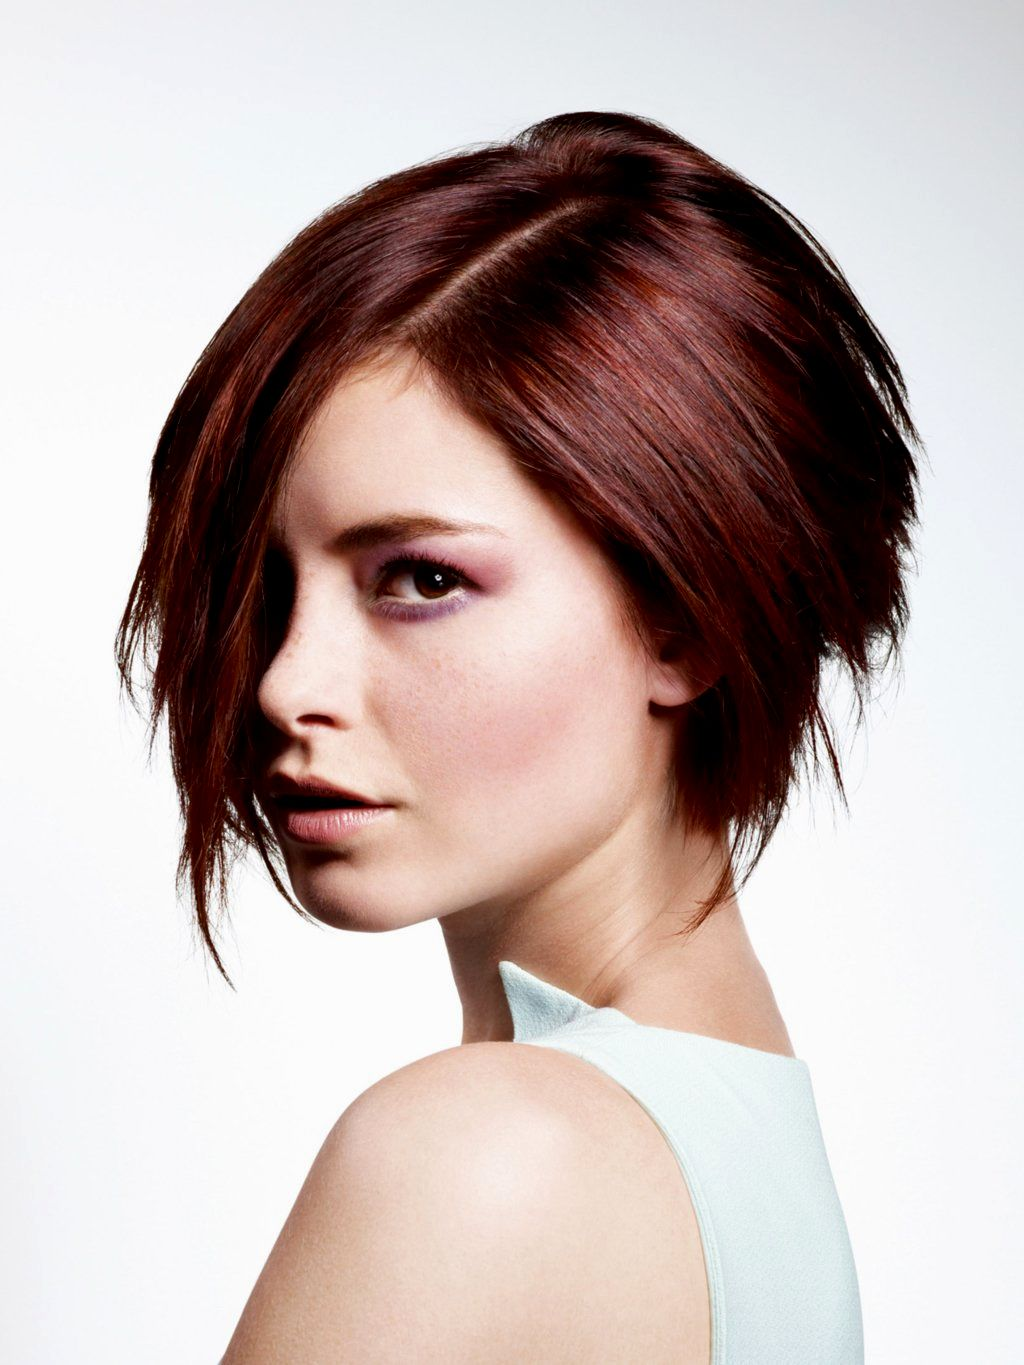 finest bob hairstyles from behind build layout-Stunning Bob Hairstyles From Behind Pattern